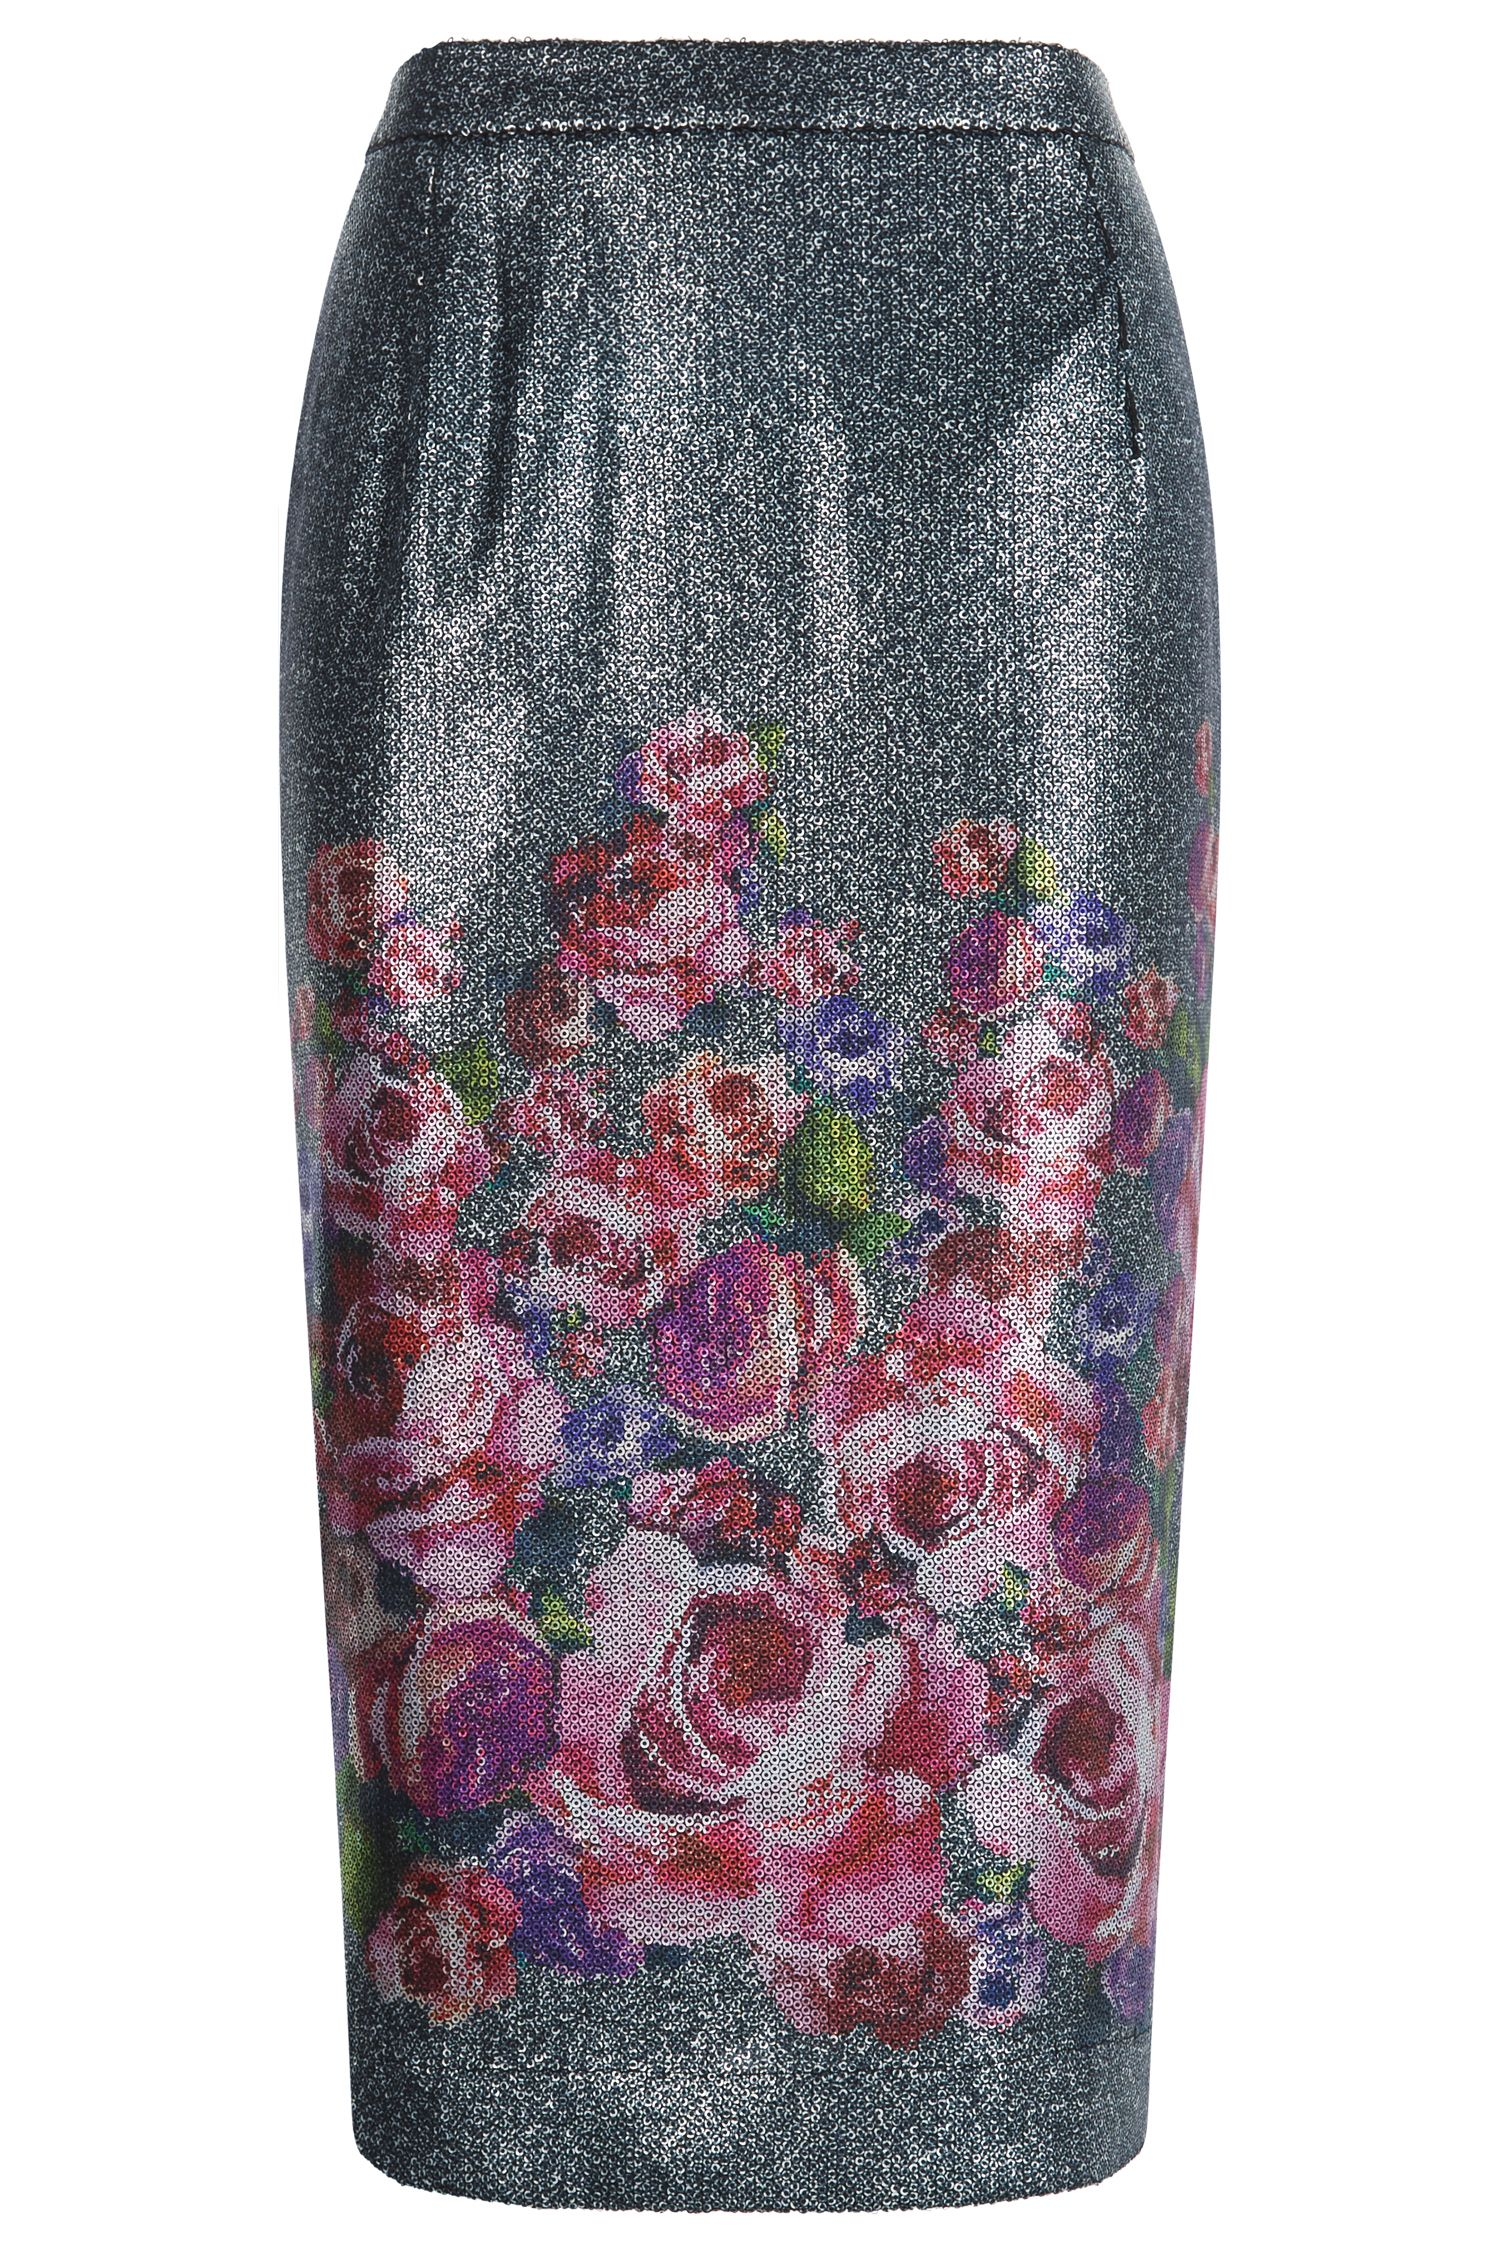 Damsel in a Dress Primrose Skirt, Multi-Coloured